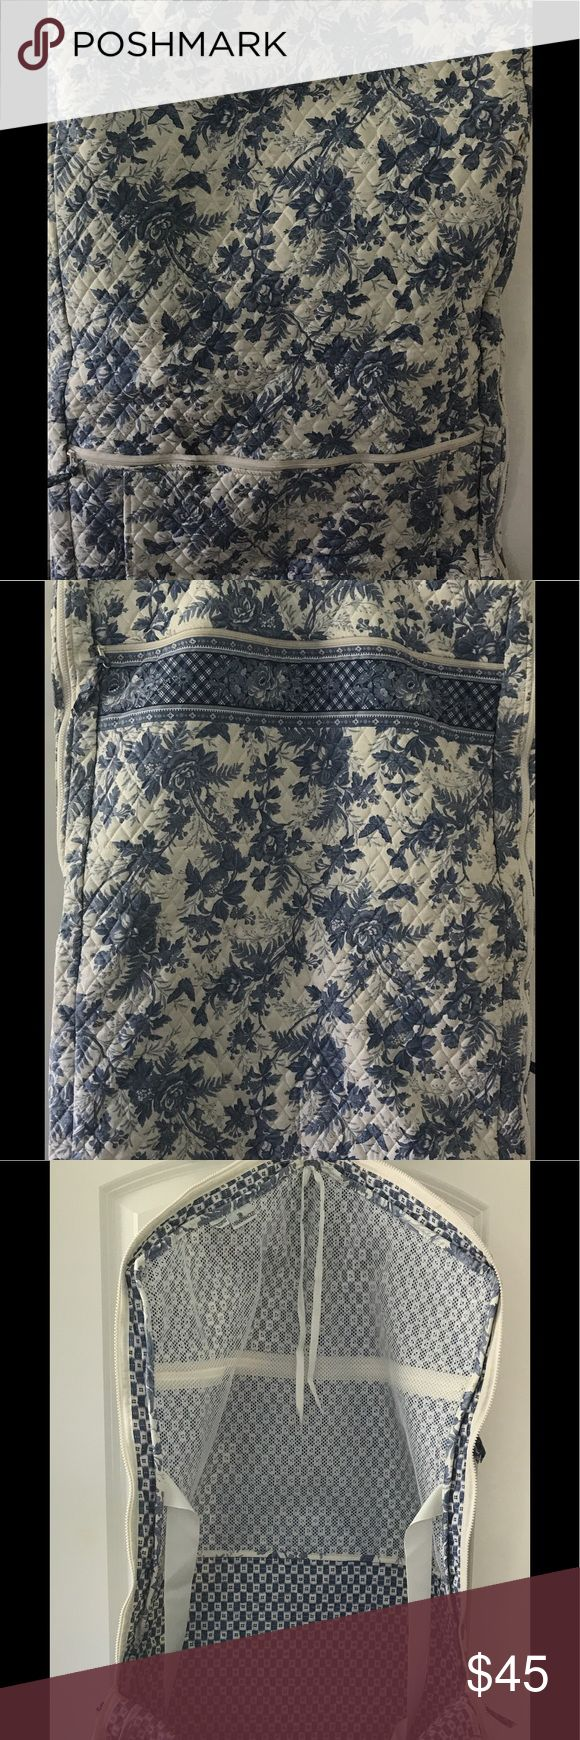 Vintage Vera Bradley Garment Bag Vintage Blue and White Toile Pattern. In good condition. A black scuff mark on one side from travel. Vera Bradley Bags Travel Bags